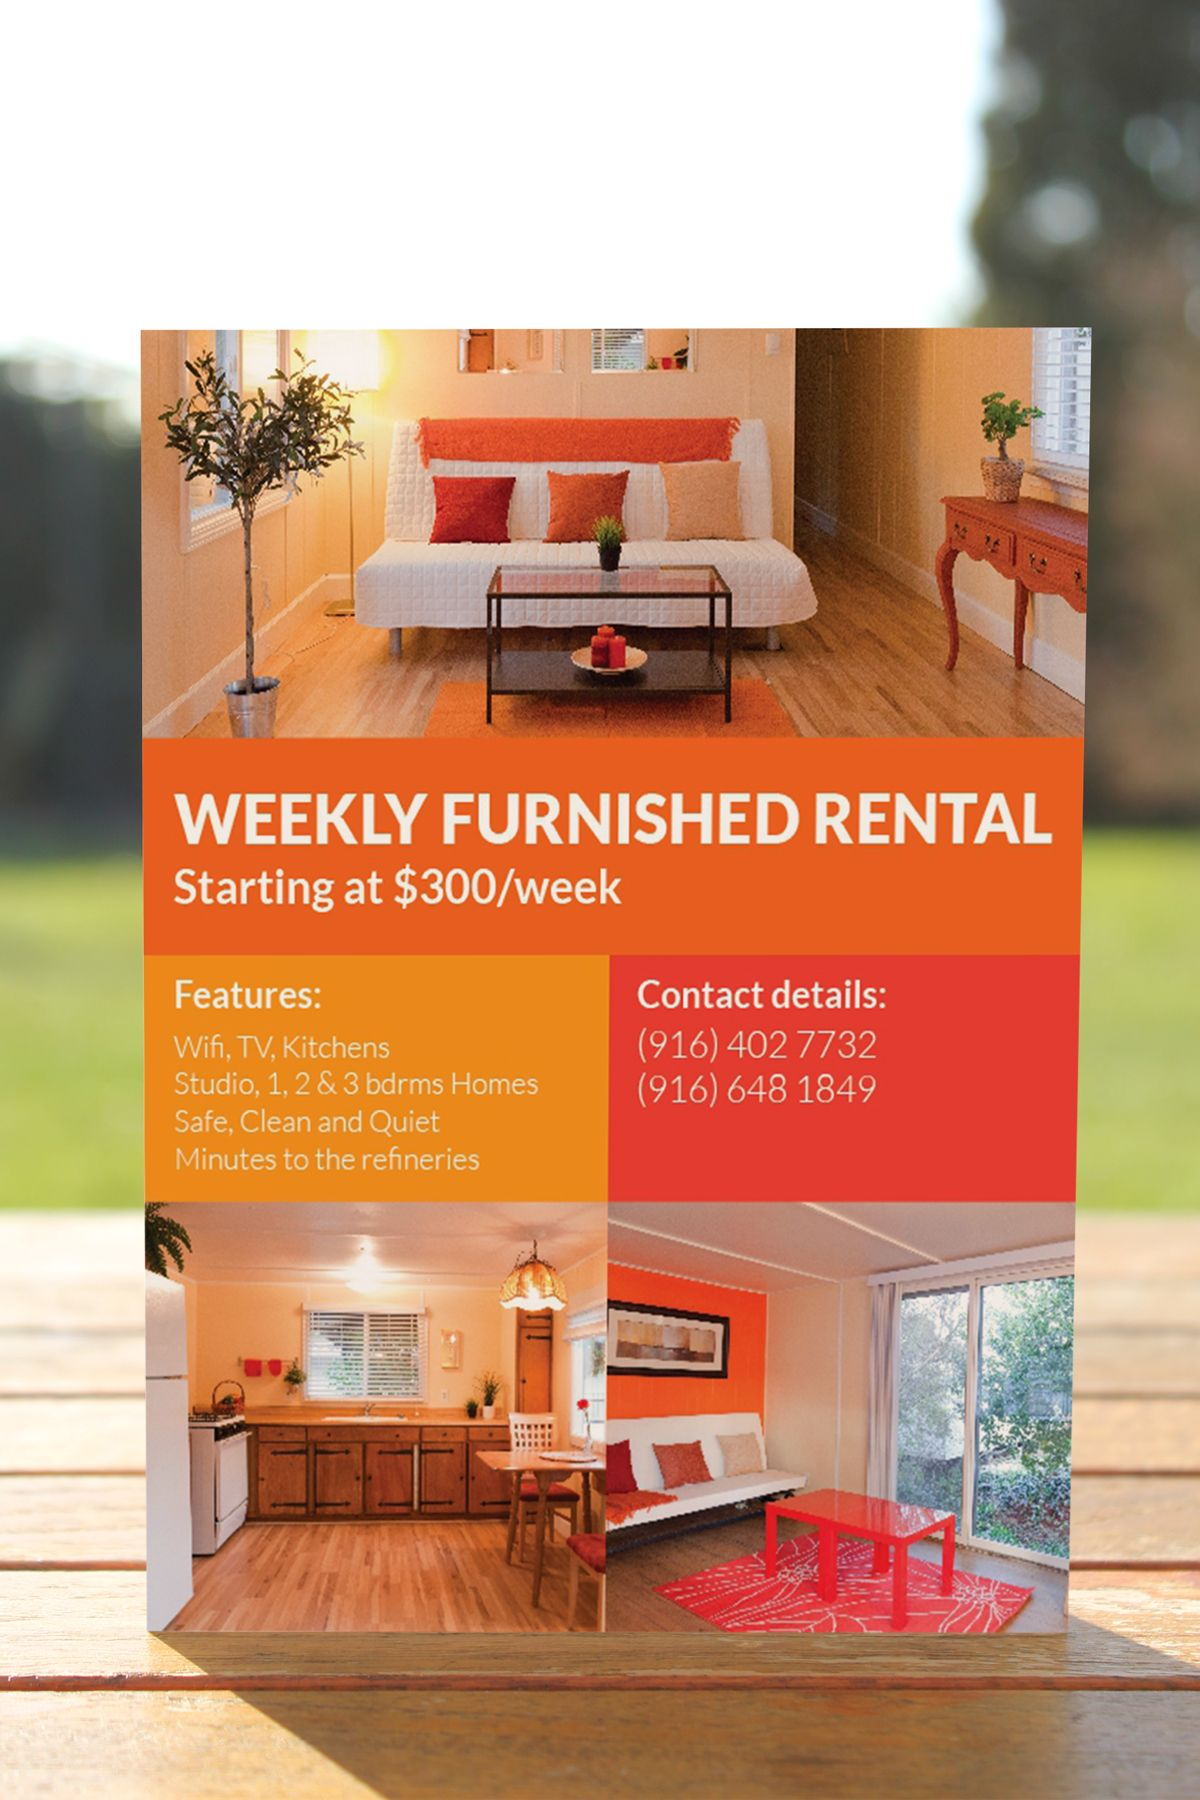 Rental Property Ad   Design    Ads Newspaper And